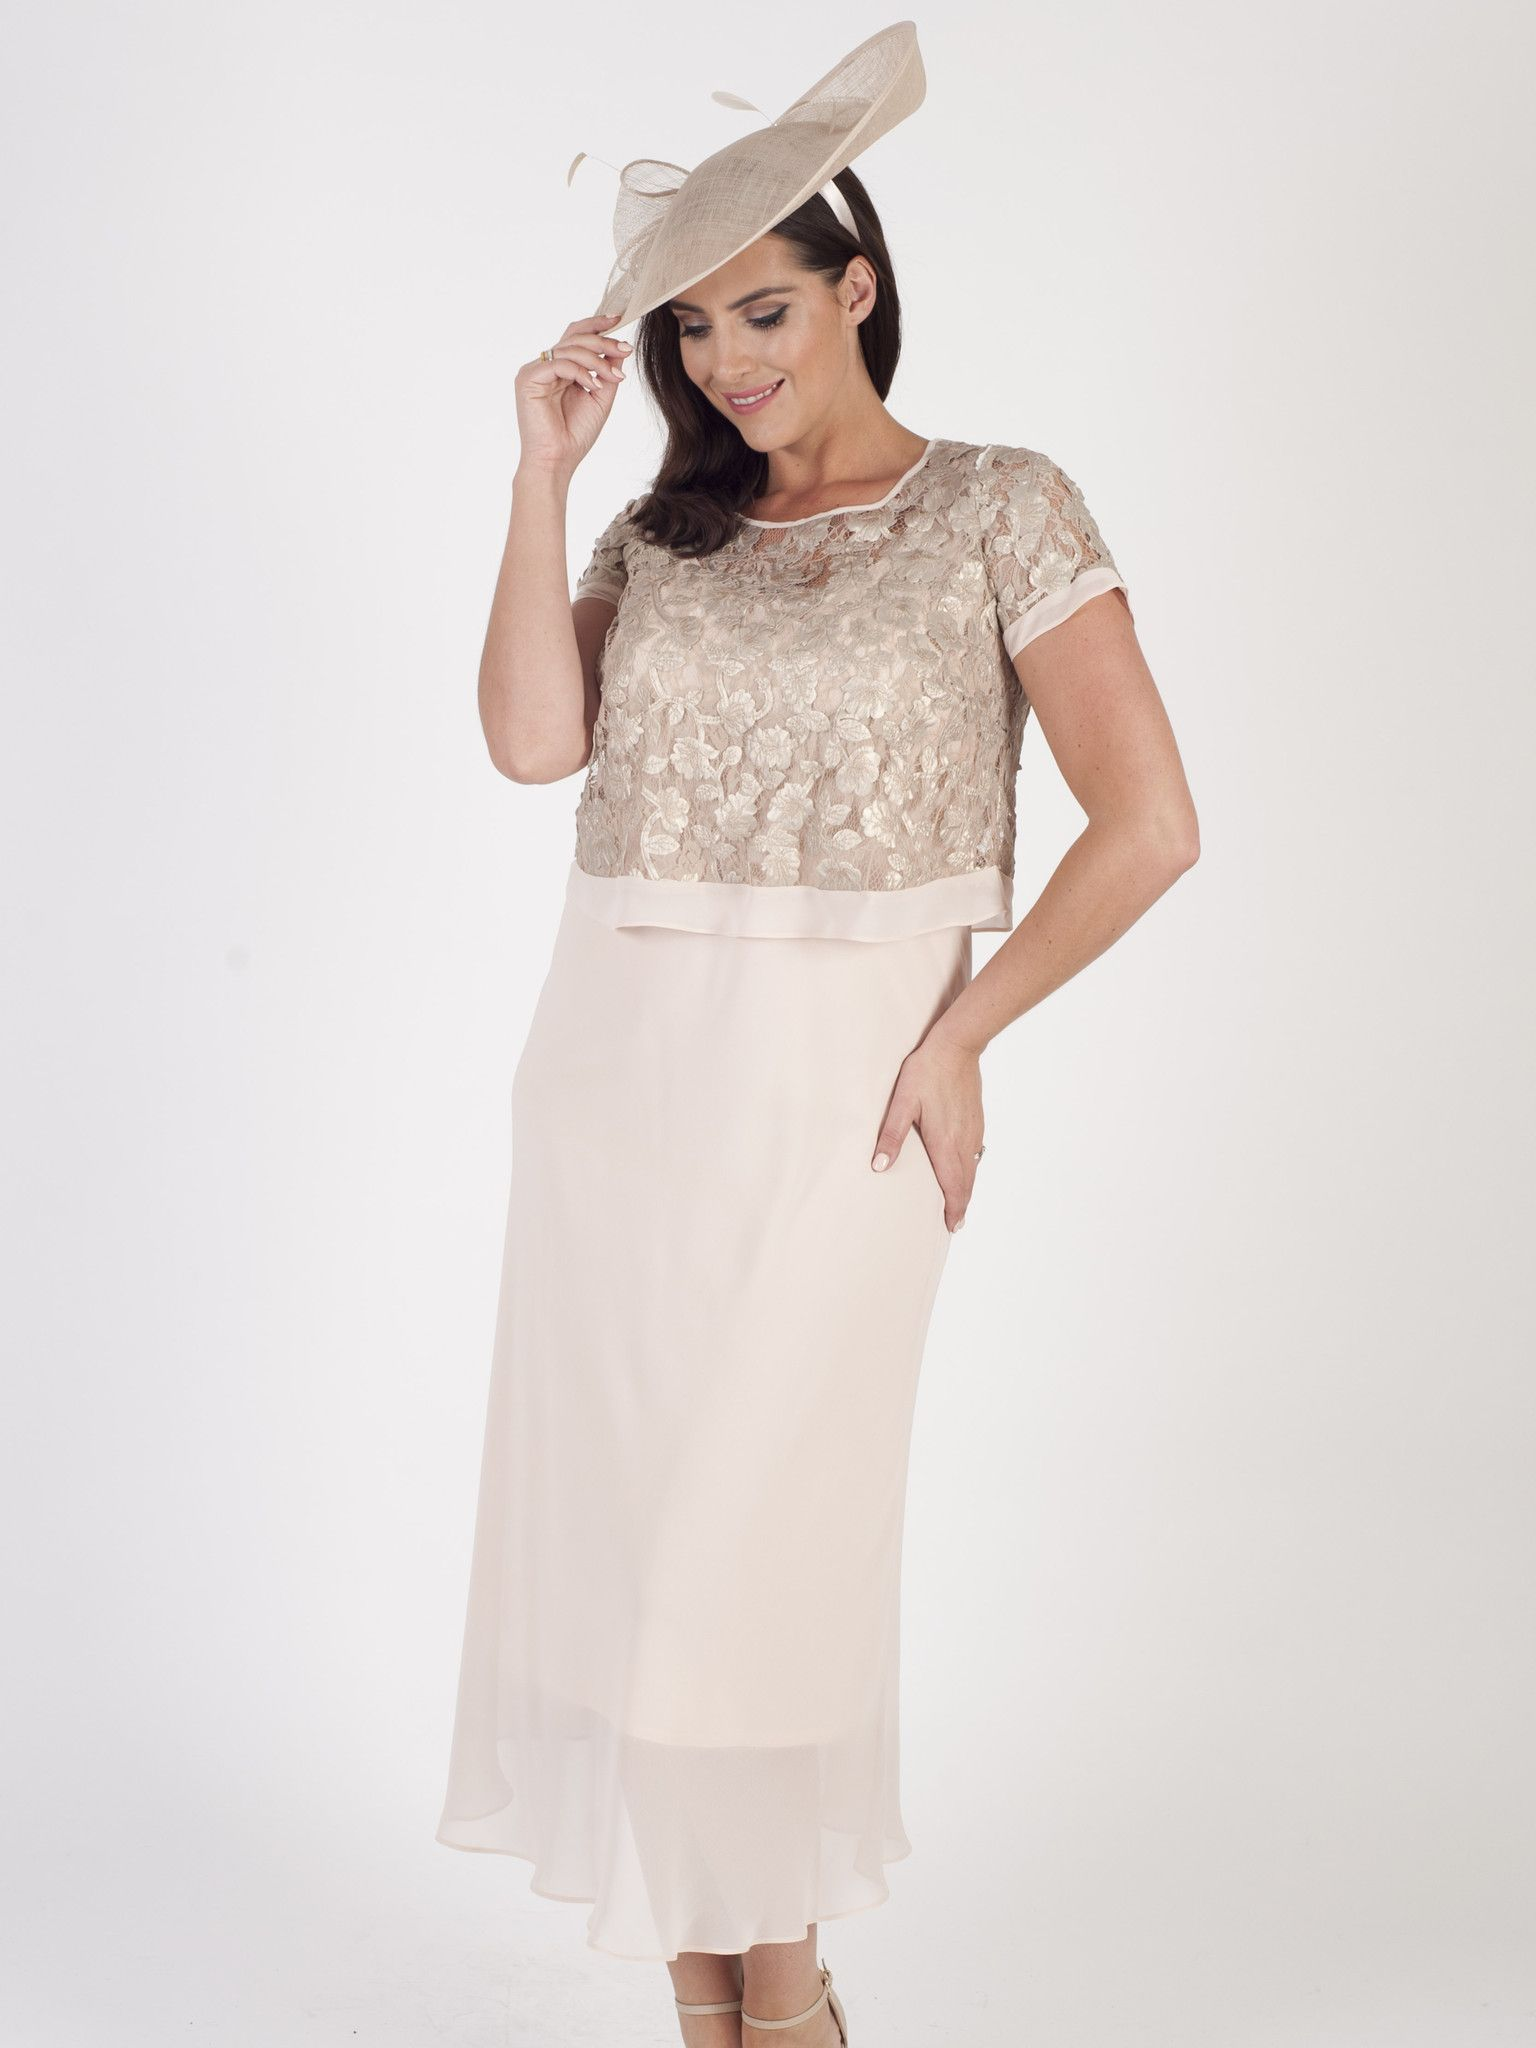 Summer Wedding Outfits 2018 Mother of the Bride or Groom MOTB Suits